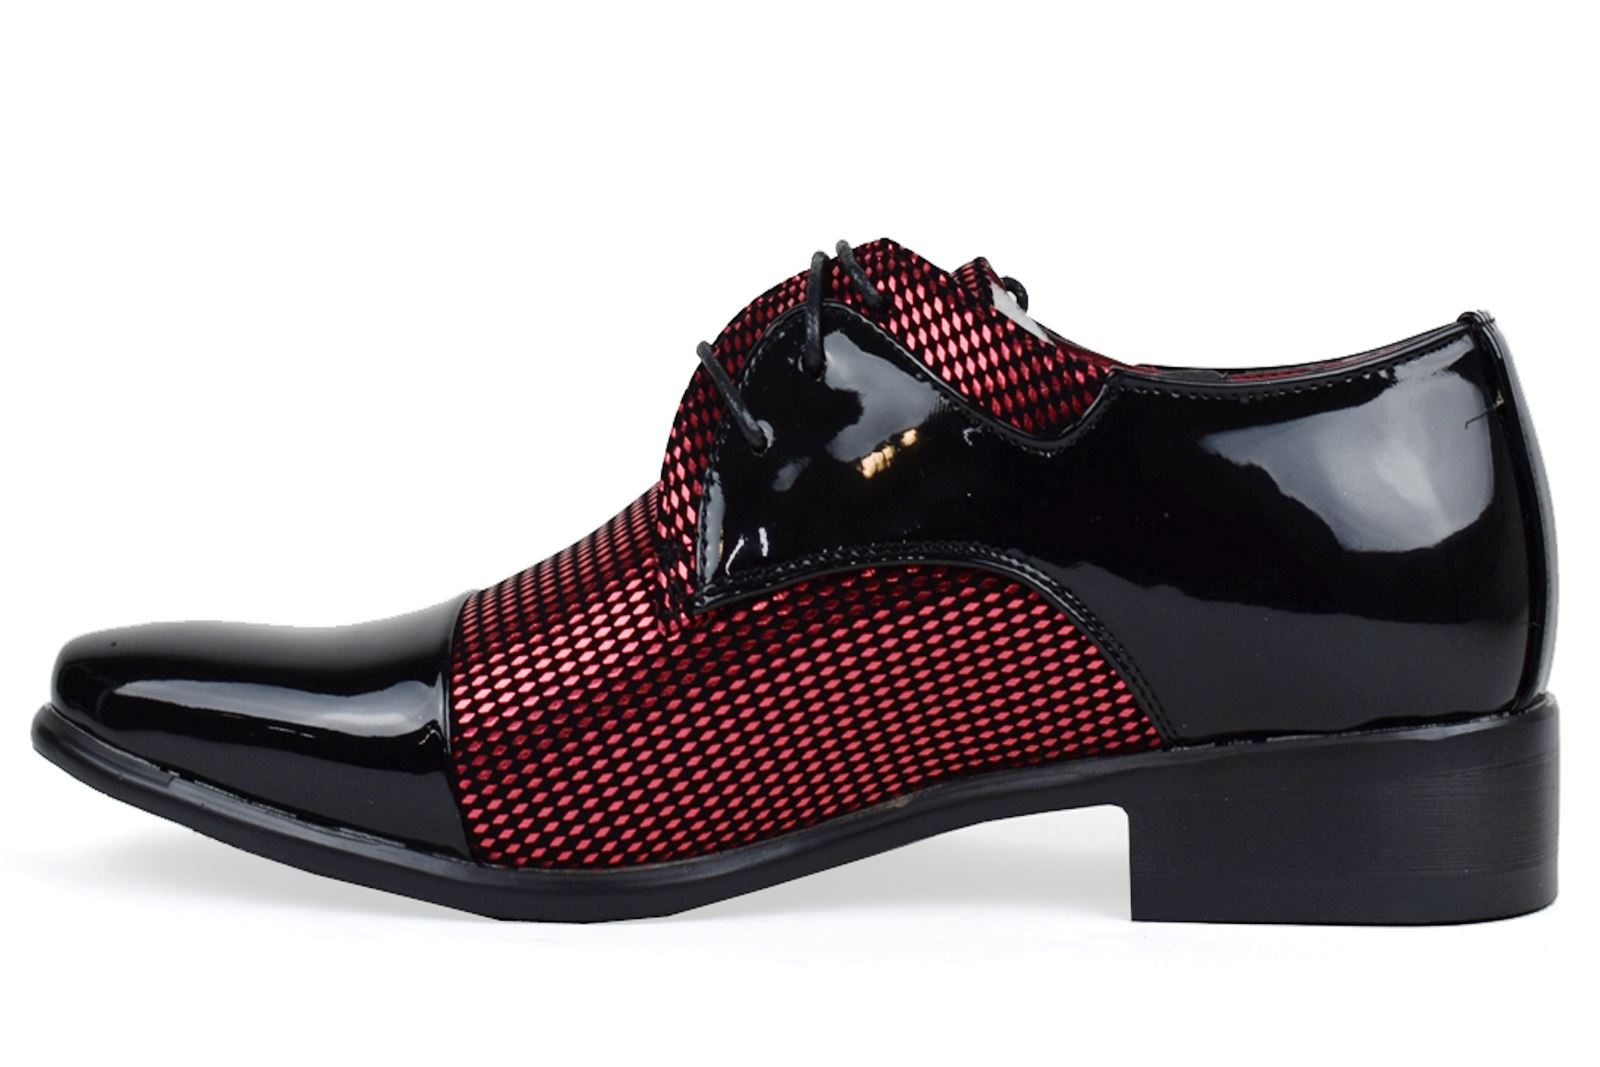 Mens-UK-Style-Leather-Lining-Formal-Office-Wedding-Smart-Work-Brogue-Shoes thumbnail 78